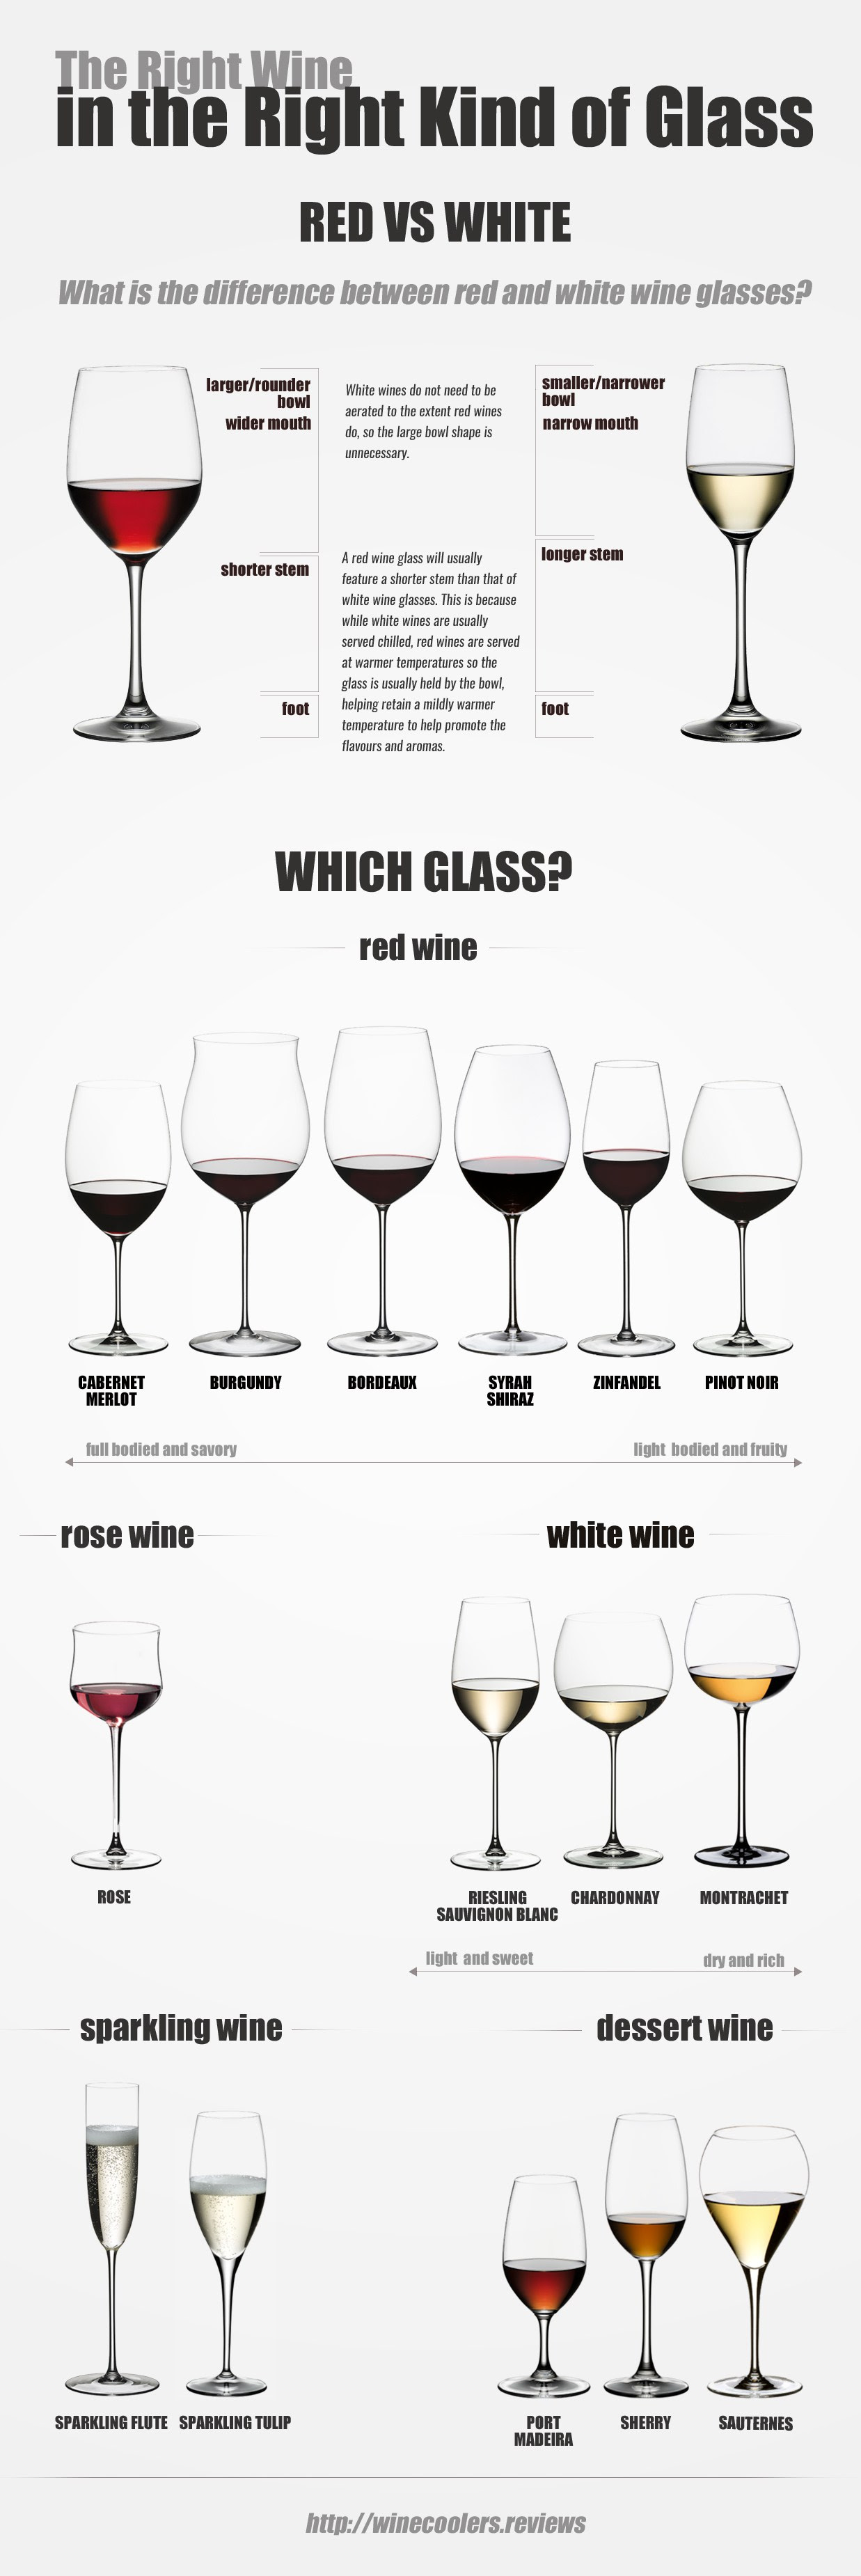 The Right Wine in the Right Kind of Glass